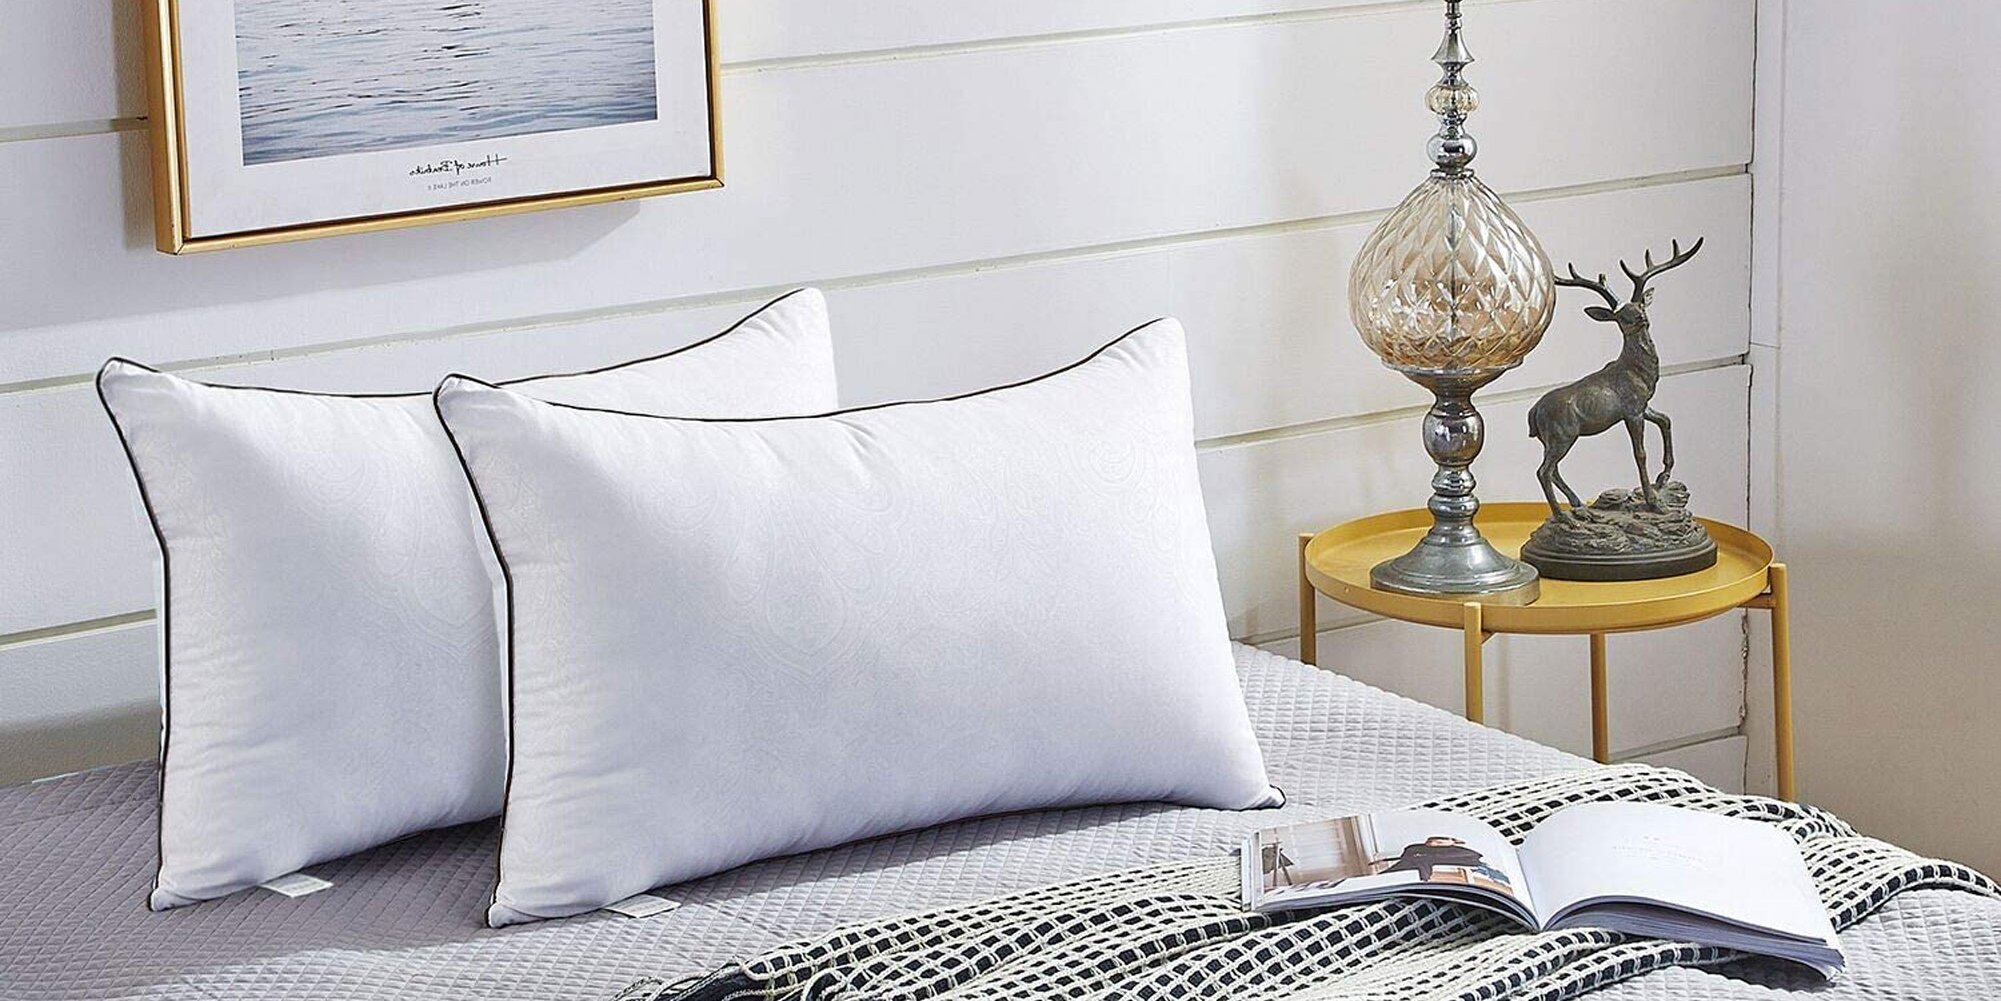 Shoppers Say These Down Alternative Pillows Are 'Even Better Than Hotel Ones'—and They're Less Than $15